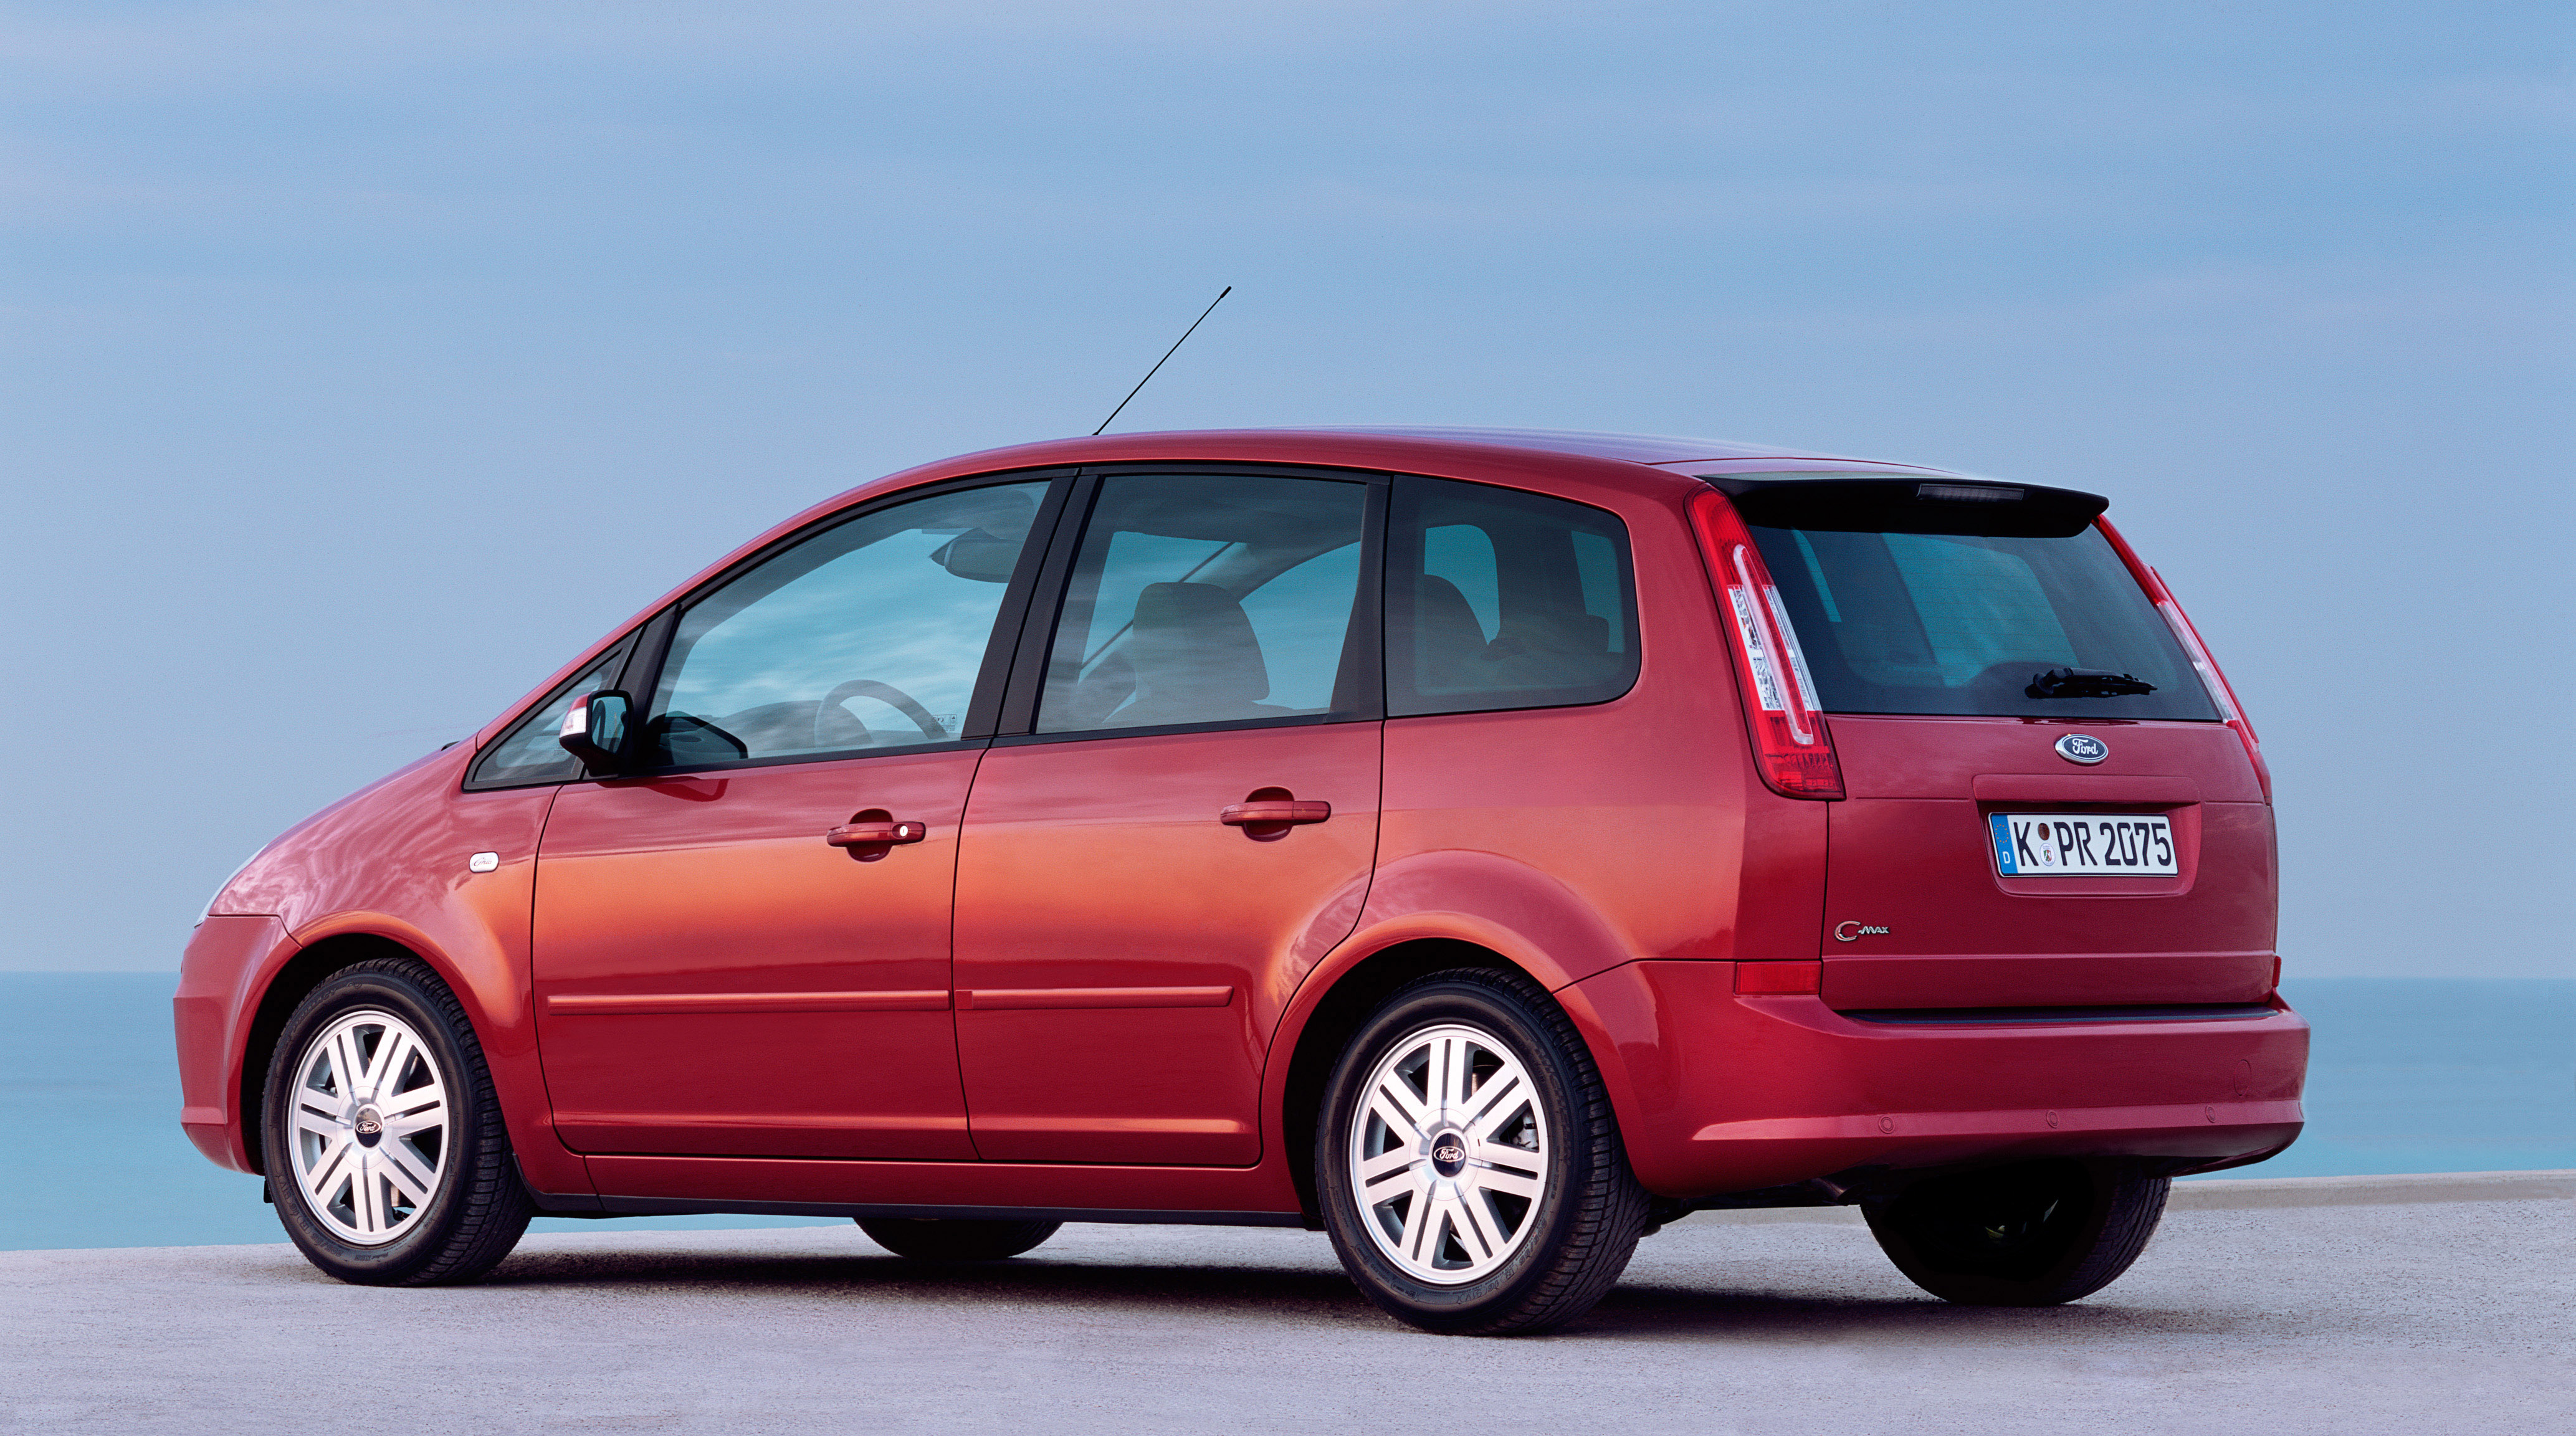 Ford C Max Review >> 2007 Ford C-Max